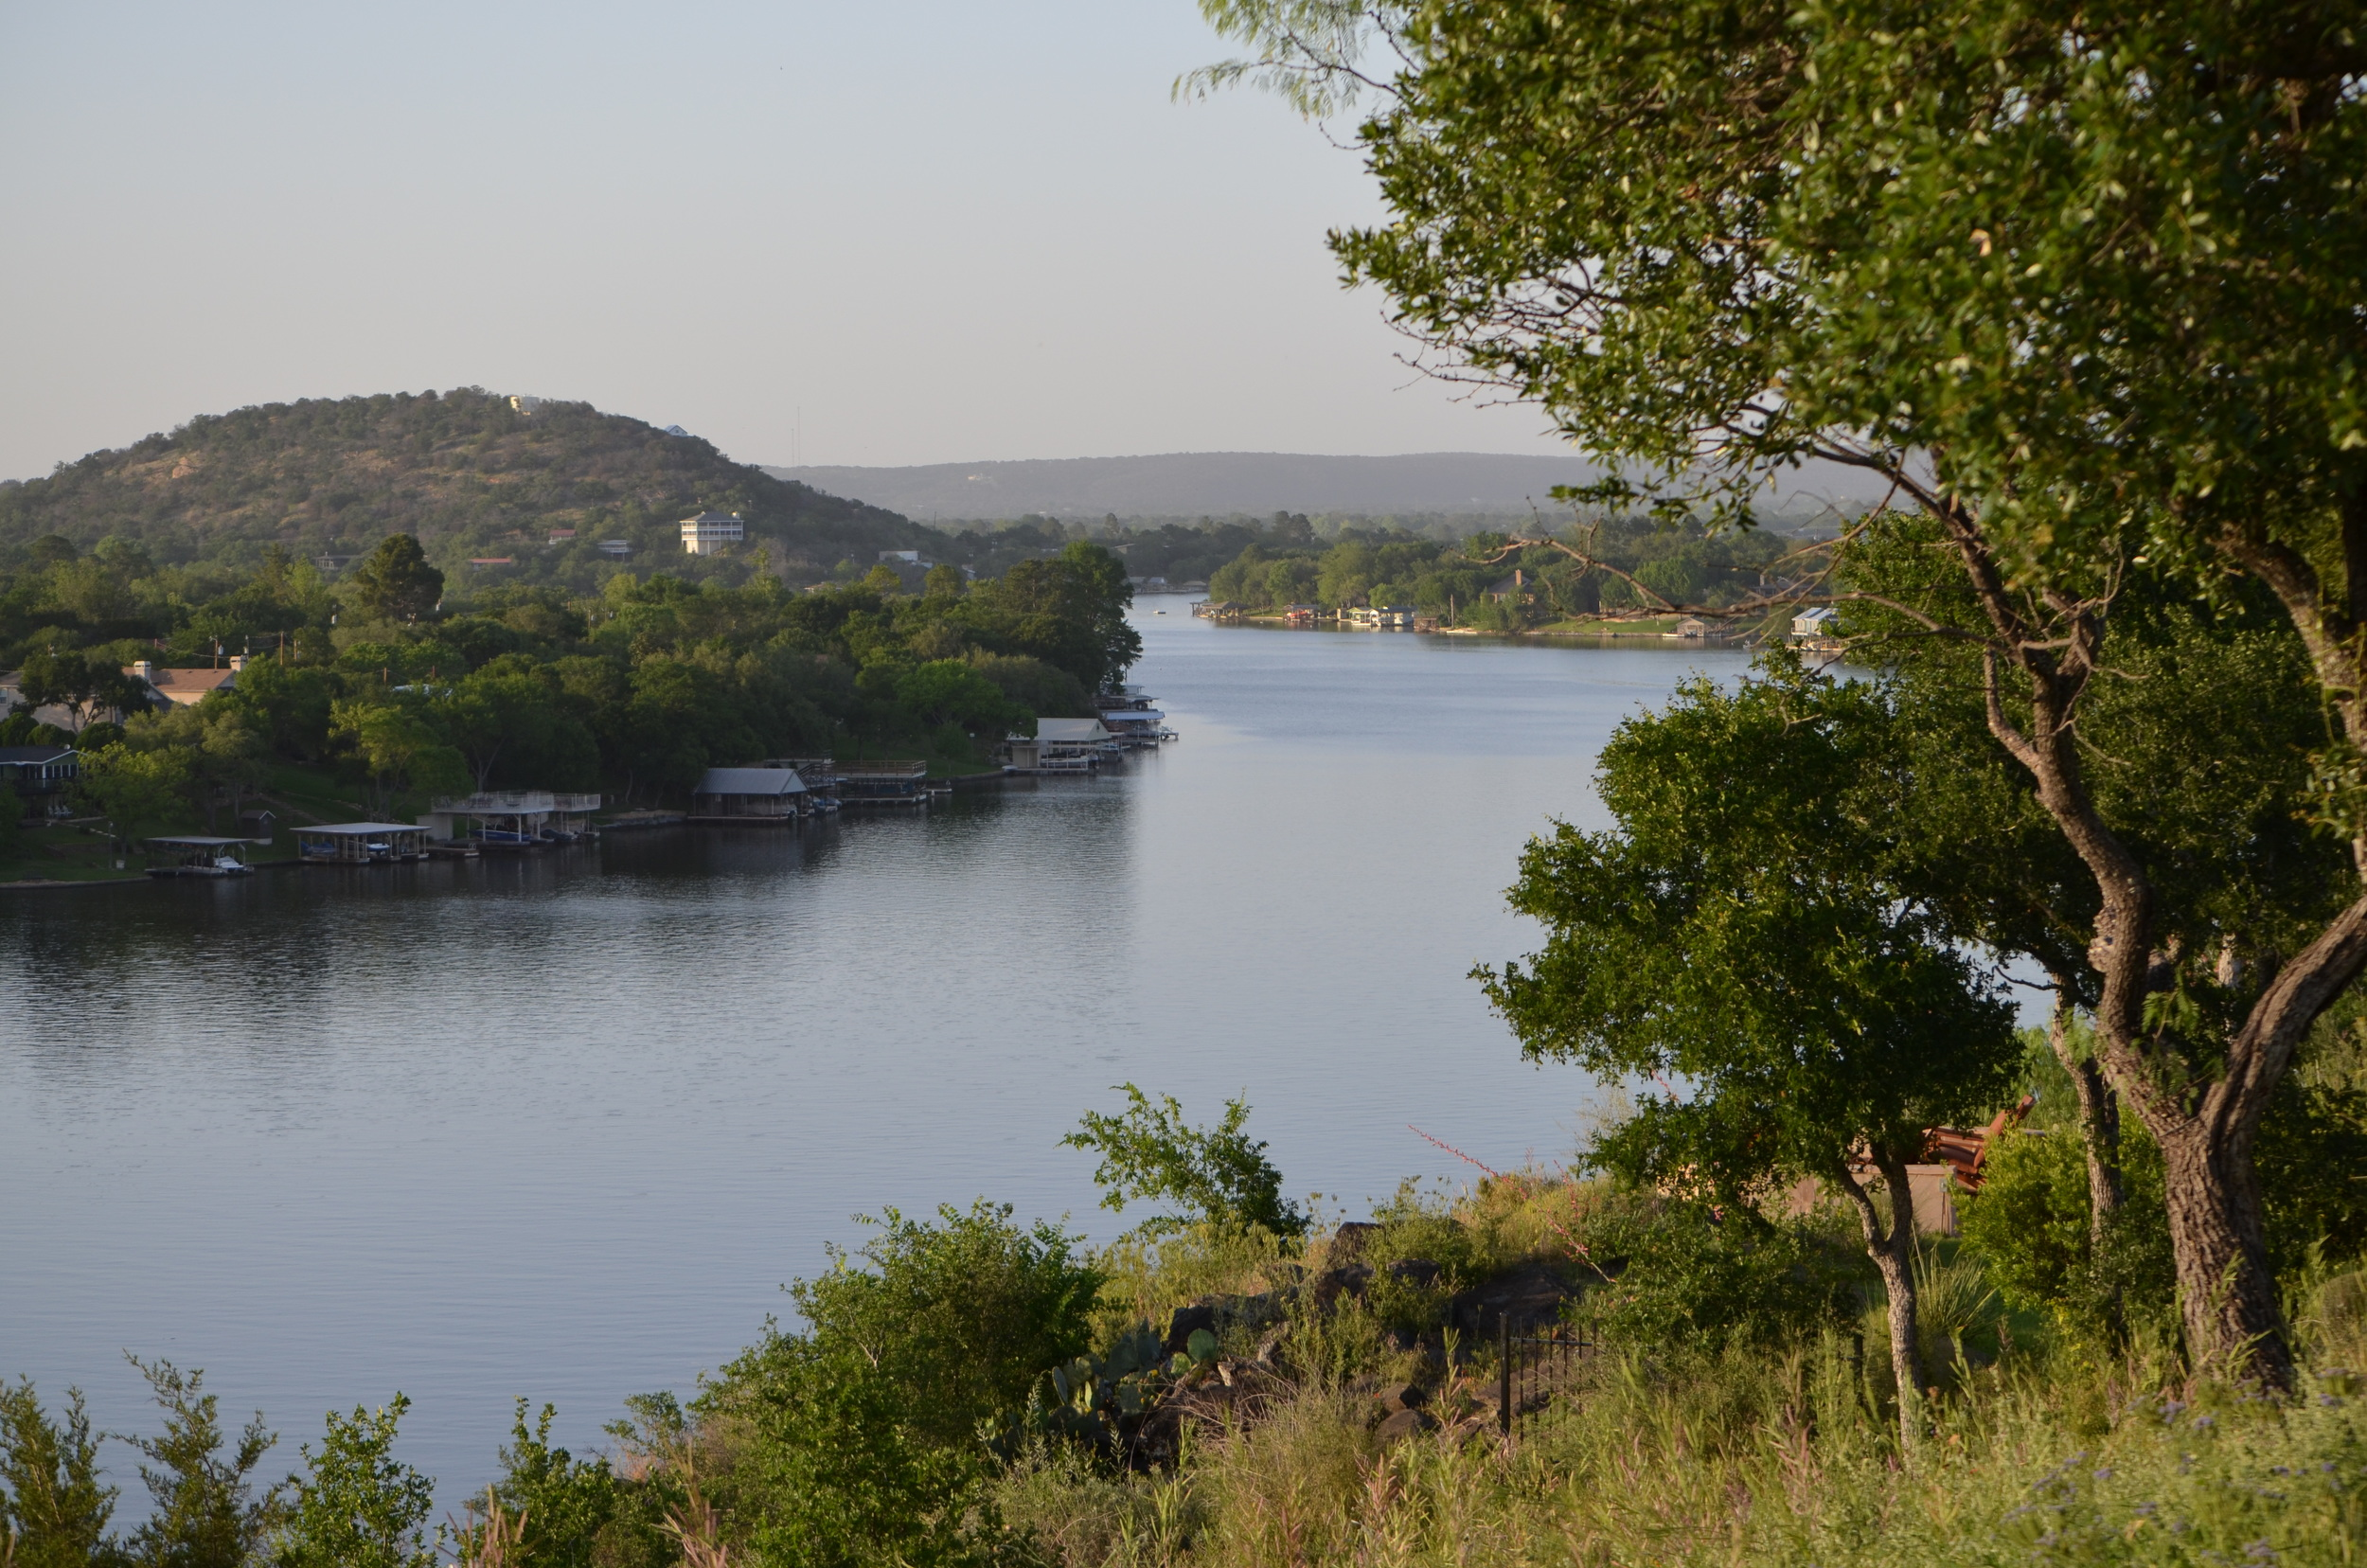 Lake LBJ View at Trails of Horseshoe Bay